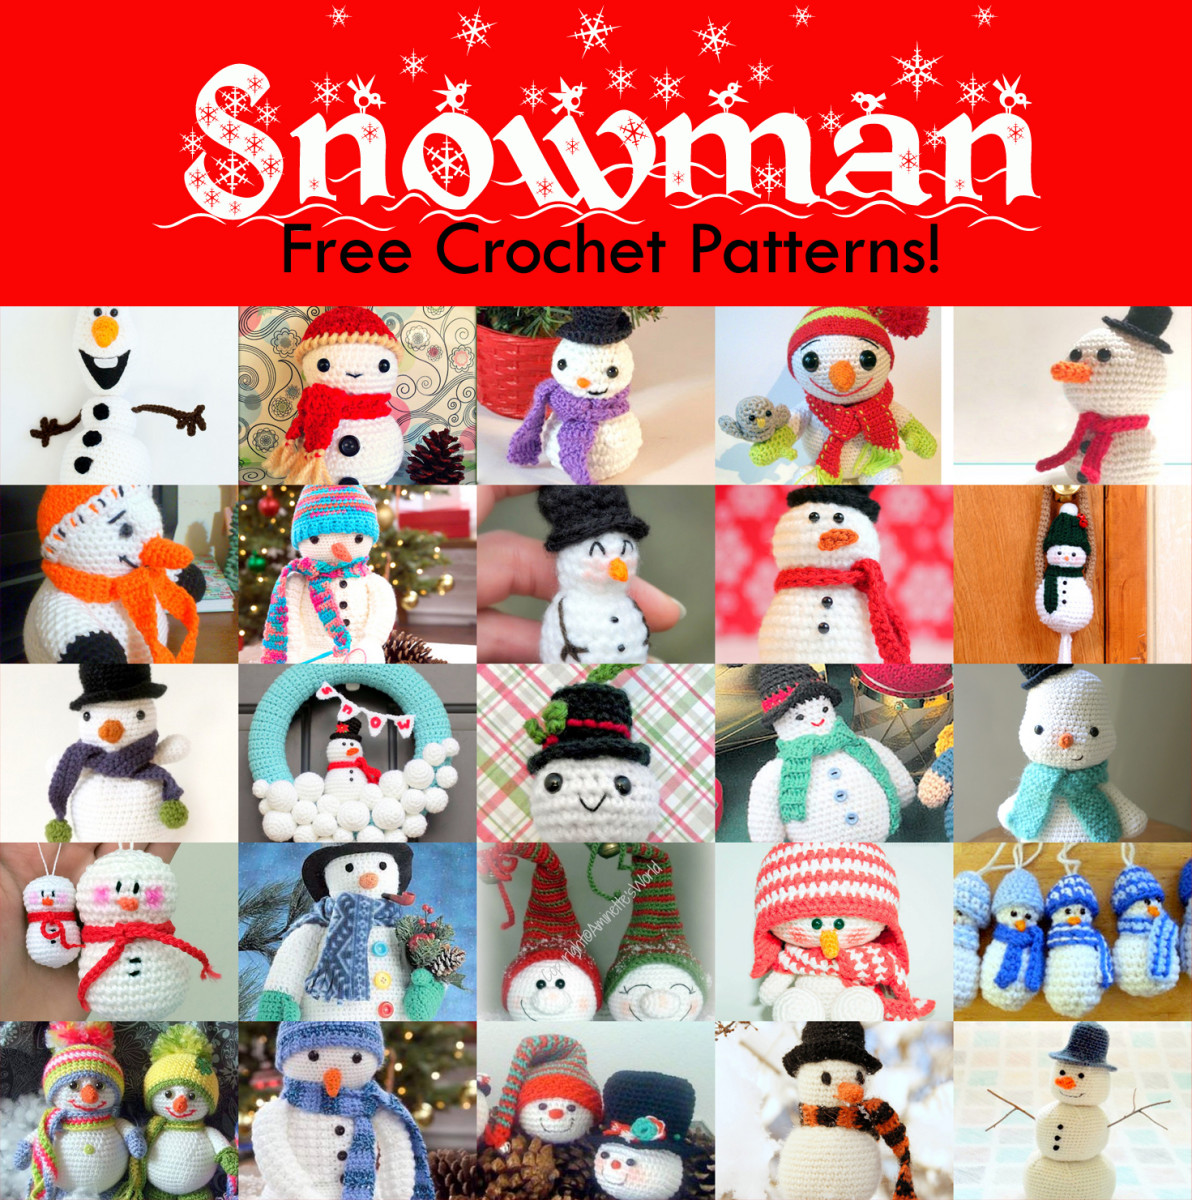 25 Free Amigurumi Snowman Crochet Patterns